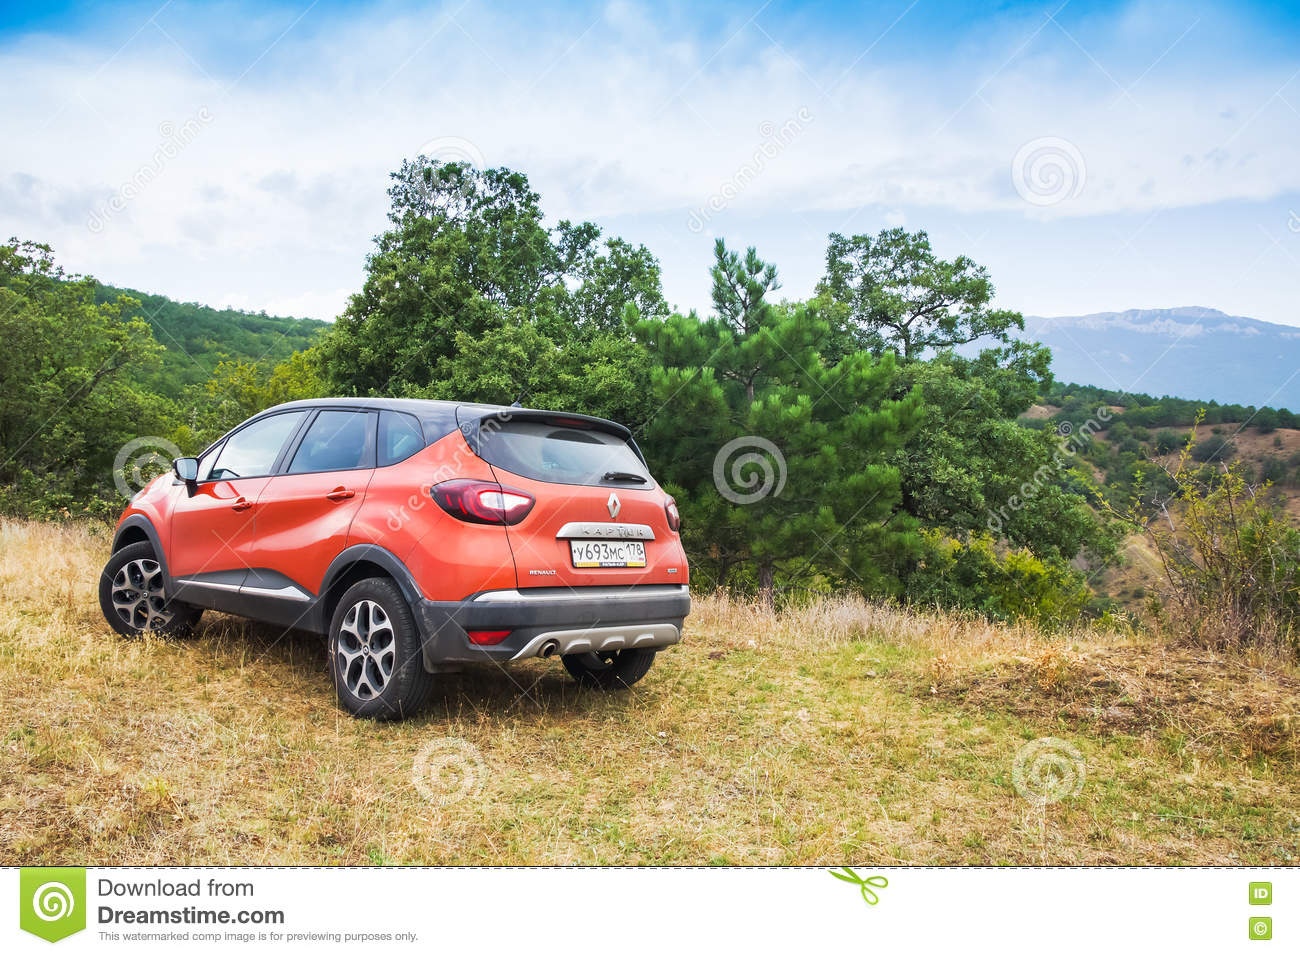 New Renault Kaptur car